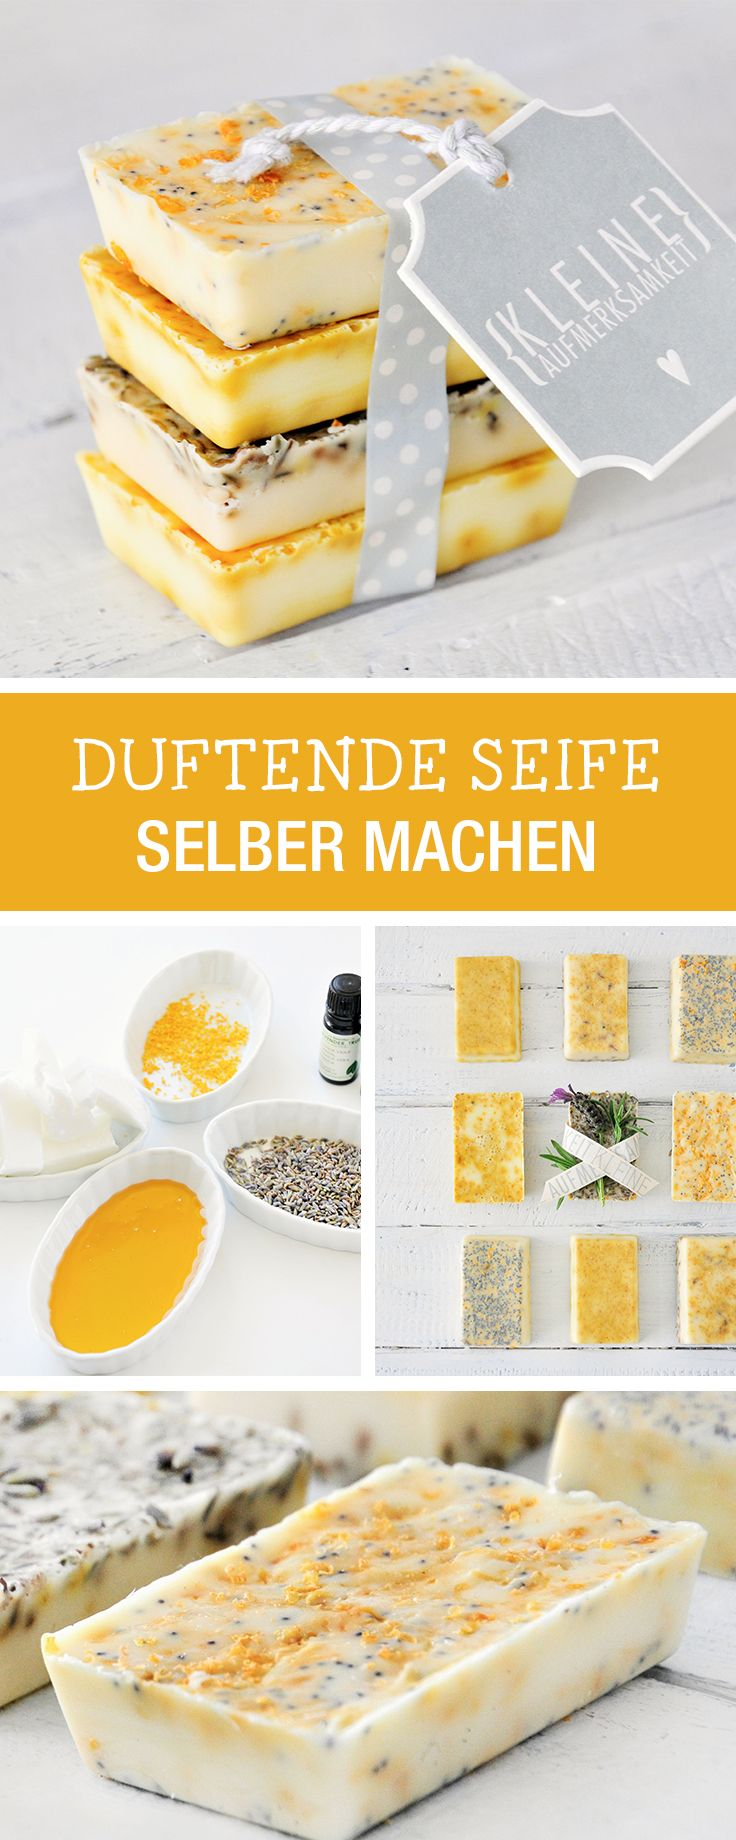 DIY-Anleitung: Duftende Seife herstellen, kleines Geschenk aus Zitrone, Lavendel und Grapefruit, zarte Haut / DIY tutorial: making fragranted soap, hand wash for soft skin via DaWanda.com – Kristin Ebbert